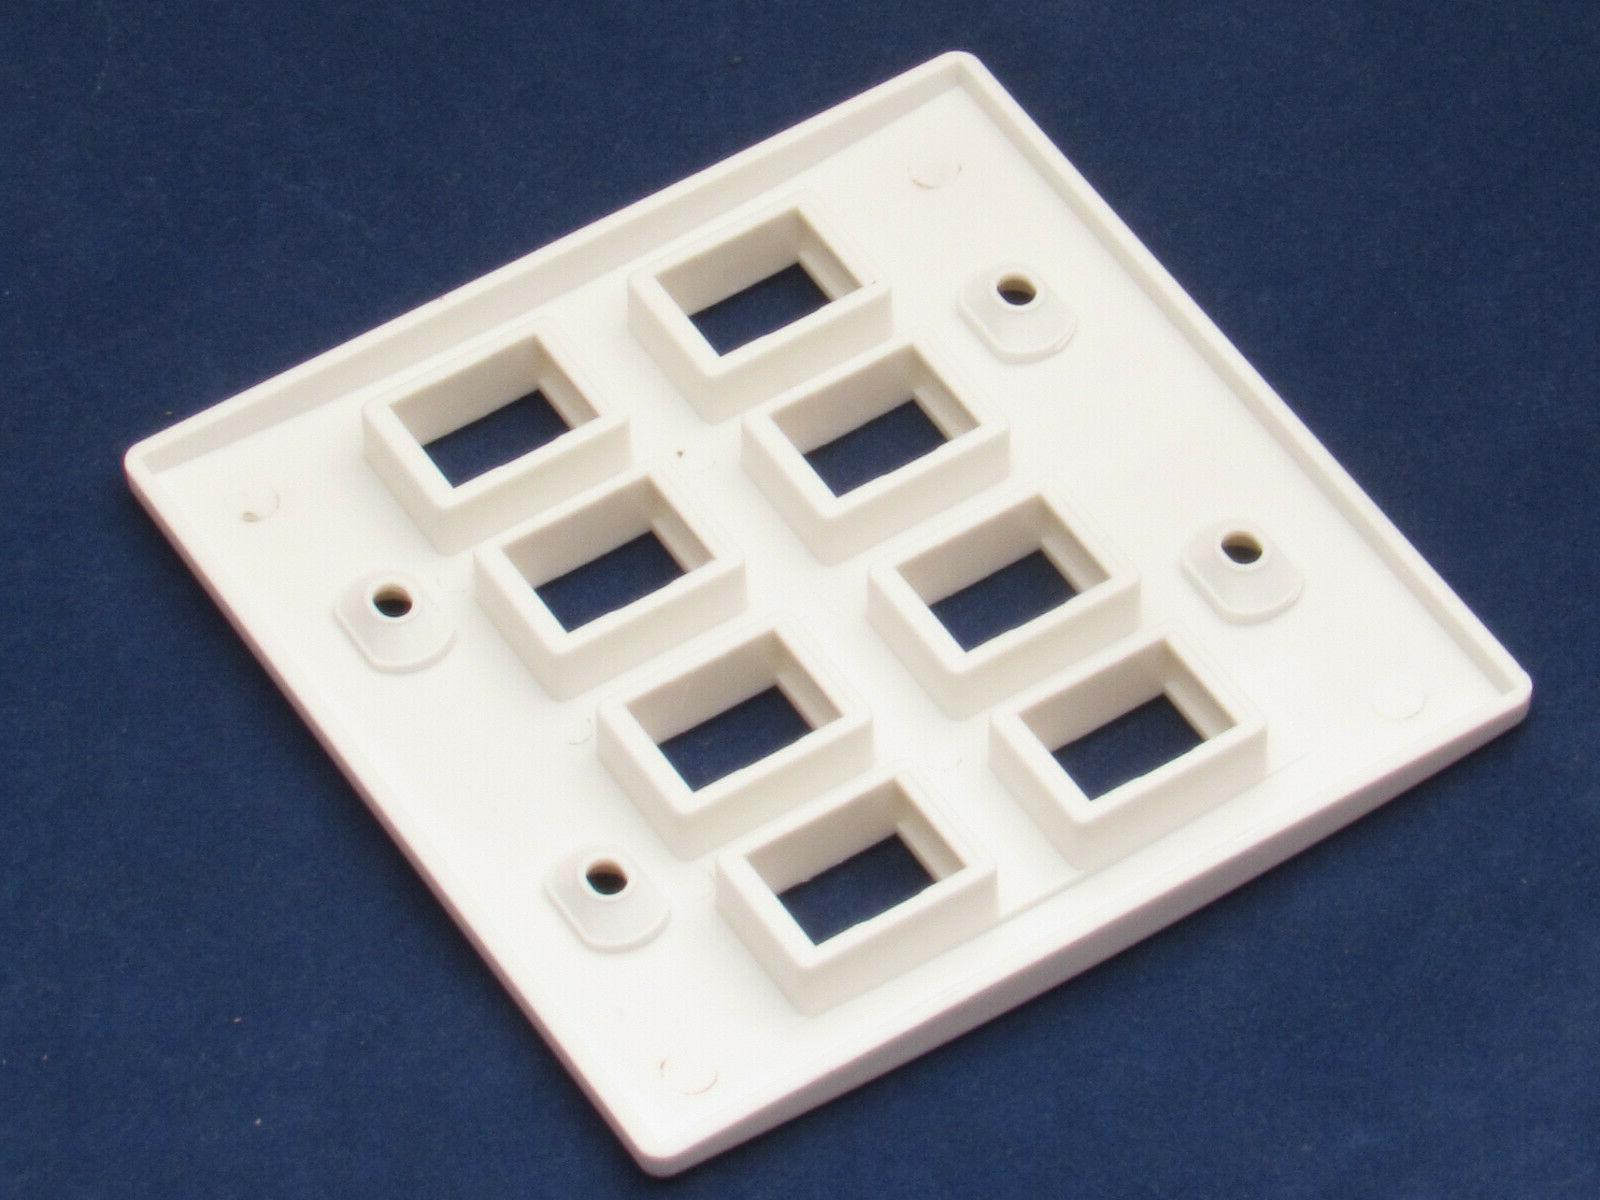 8 RJ45 CAT5 CAT5e Network Faceplate White